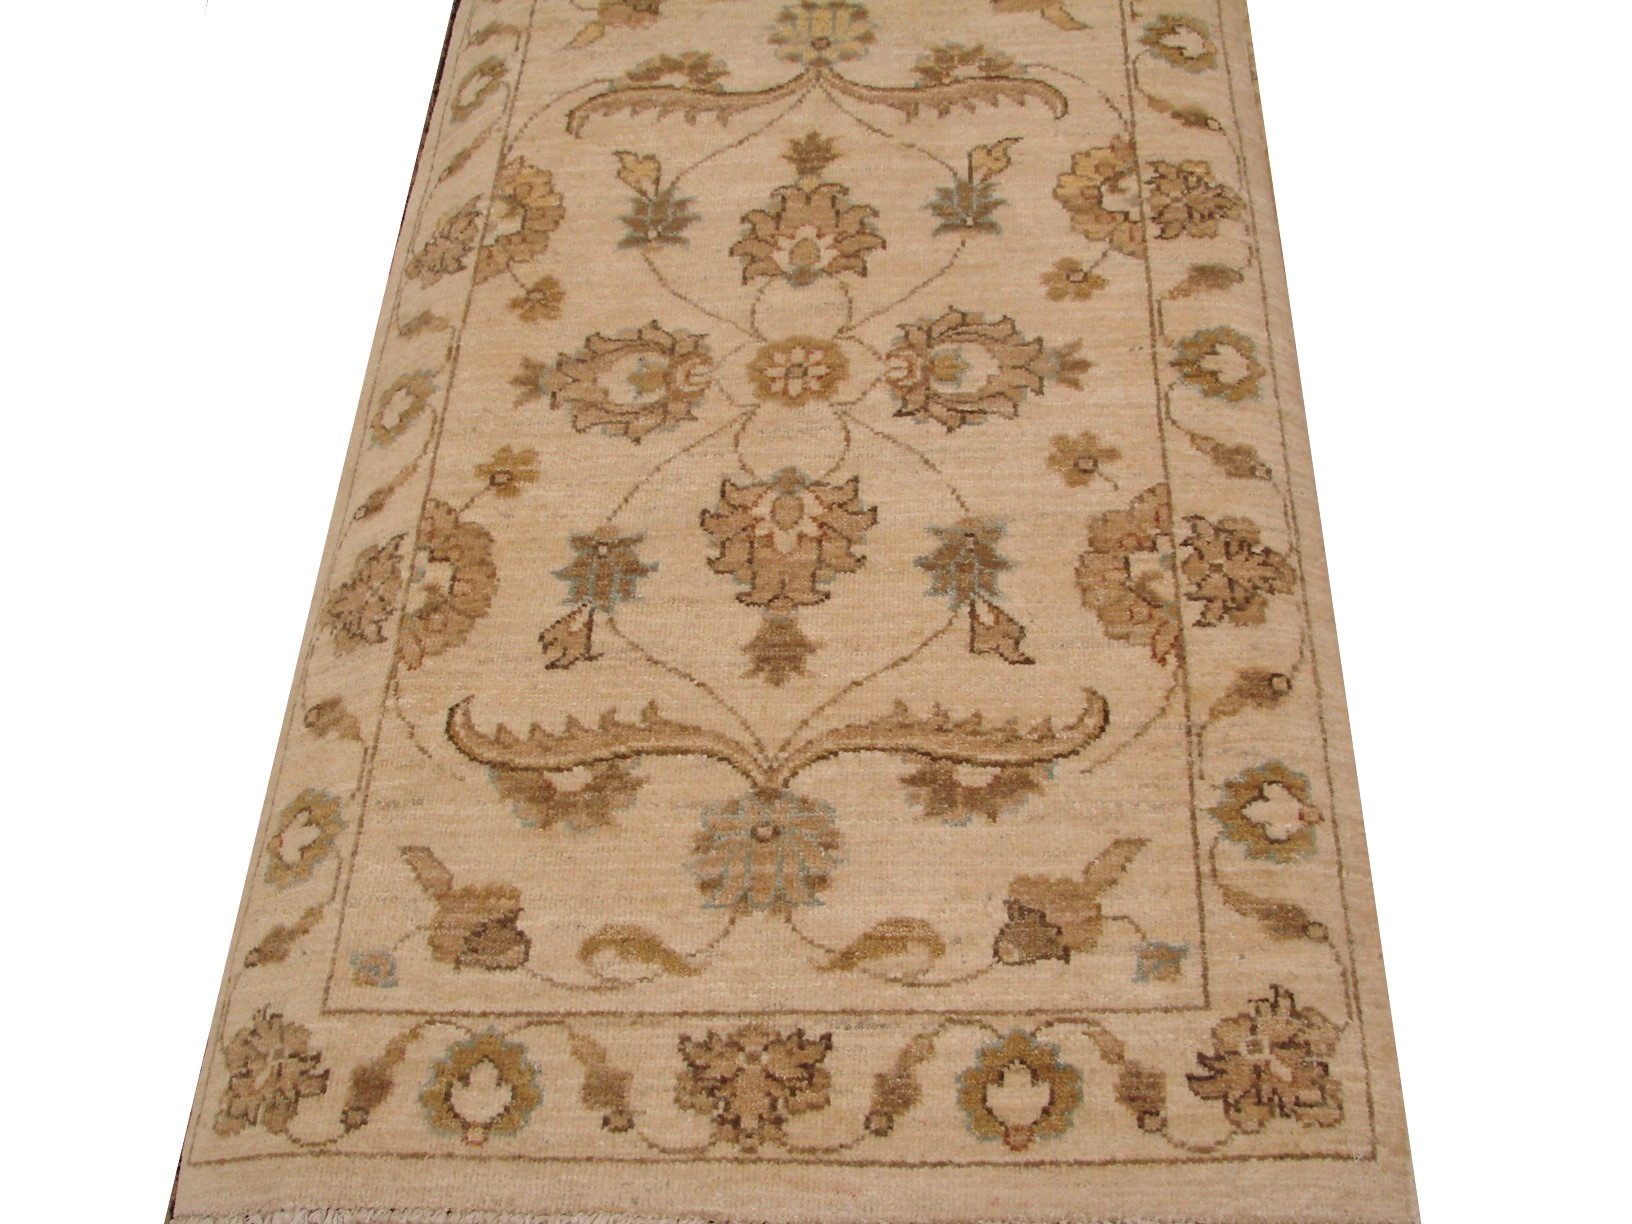 2X4 Peshawar Hand Knotted Wool Area Rug - MR12750